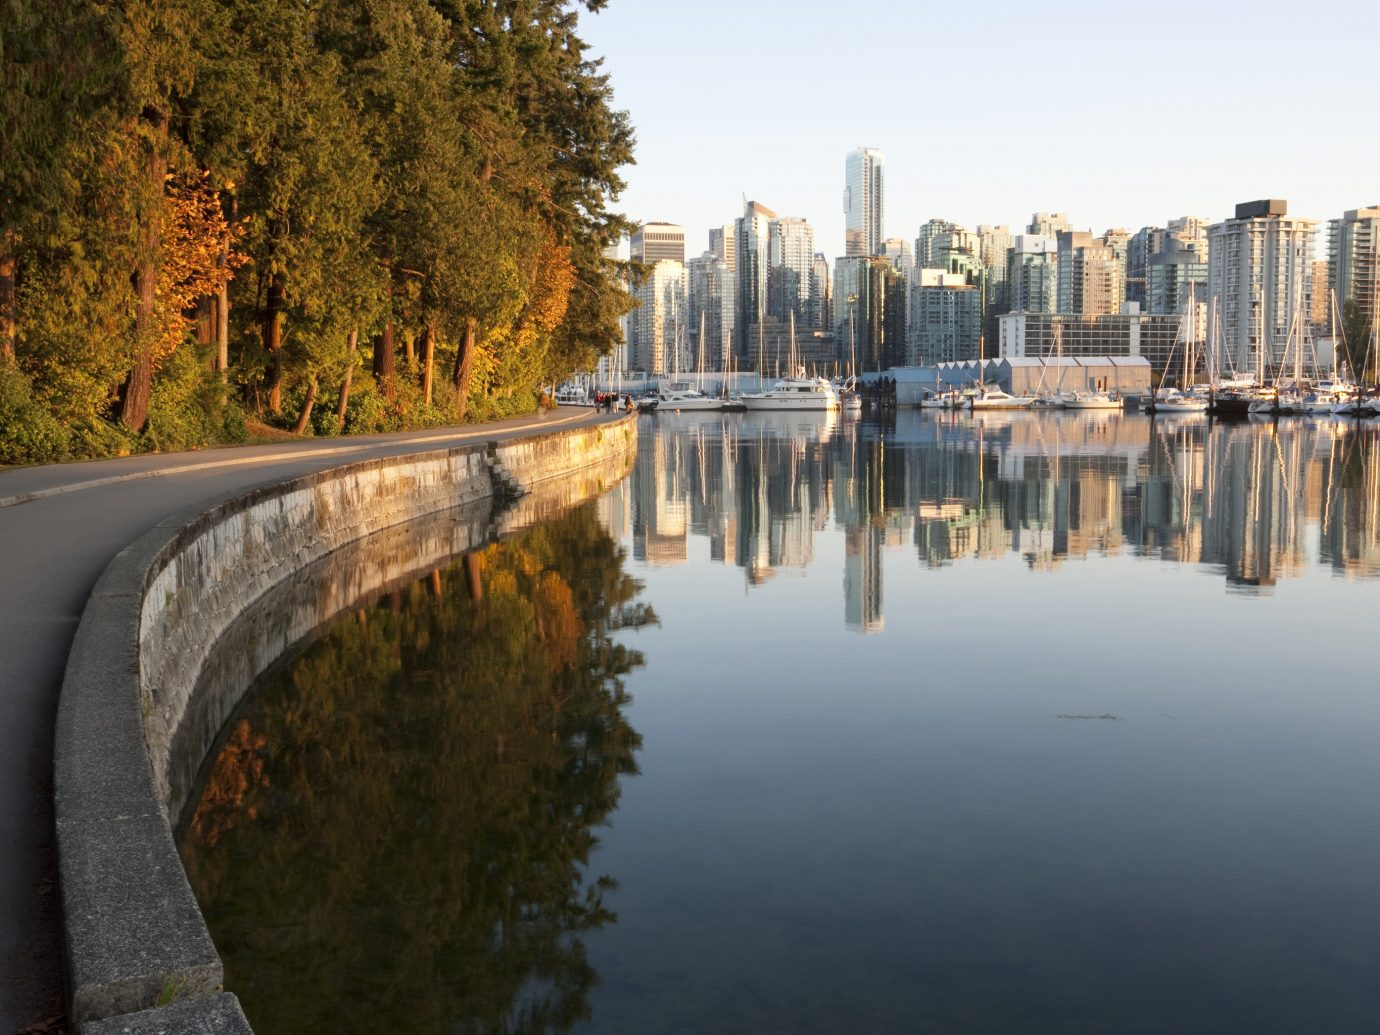 Offbeat Trip Ideas outdoor water sky reflection body of water Canal tree River waterway season morning autumn Lake day